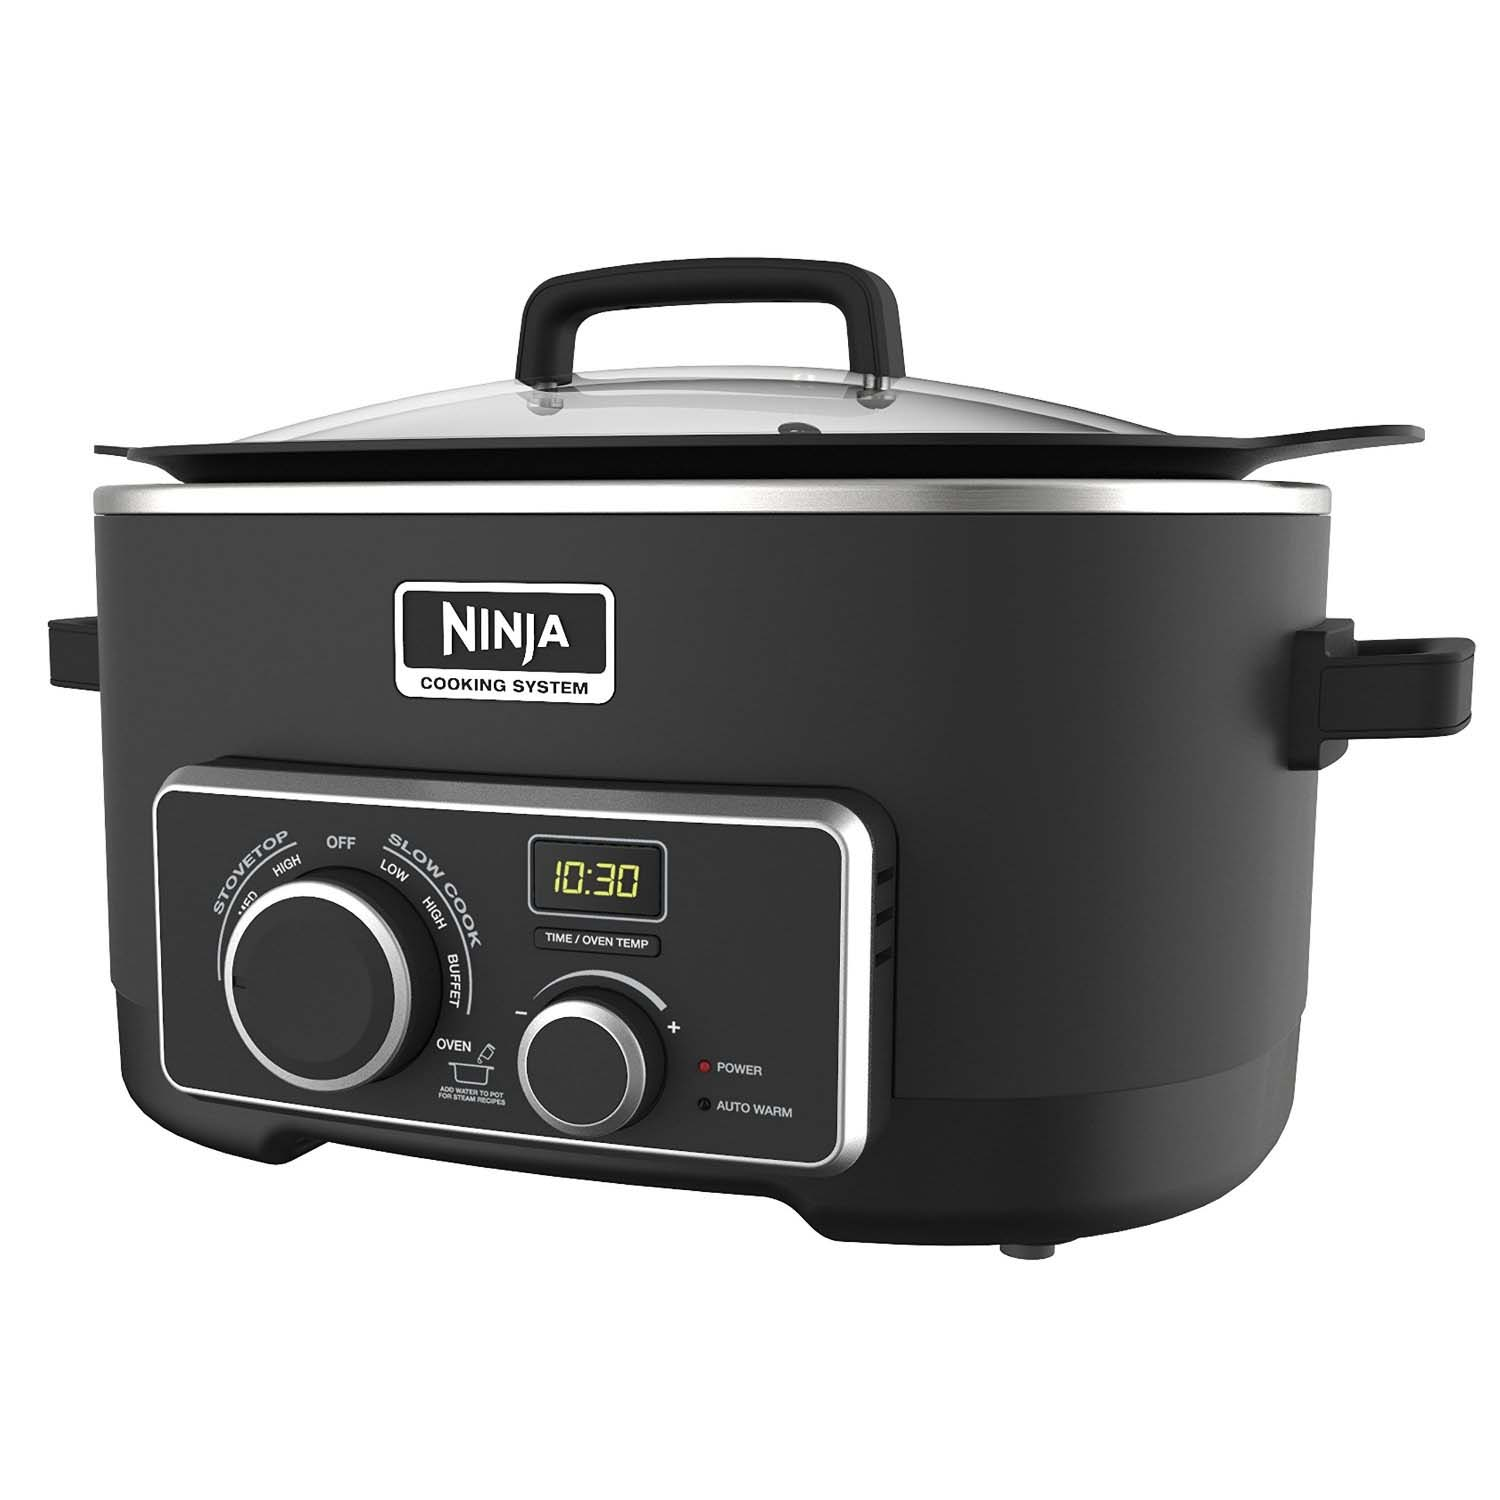 Ninja Multi Cooker 3-in-1 6-Quart Digital Cooking System (Certified Refurbished)